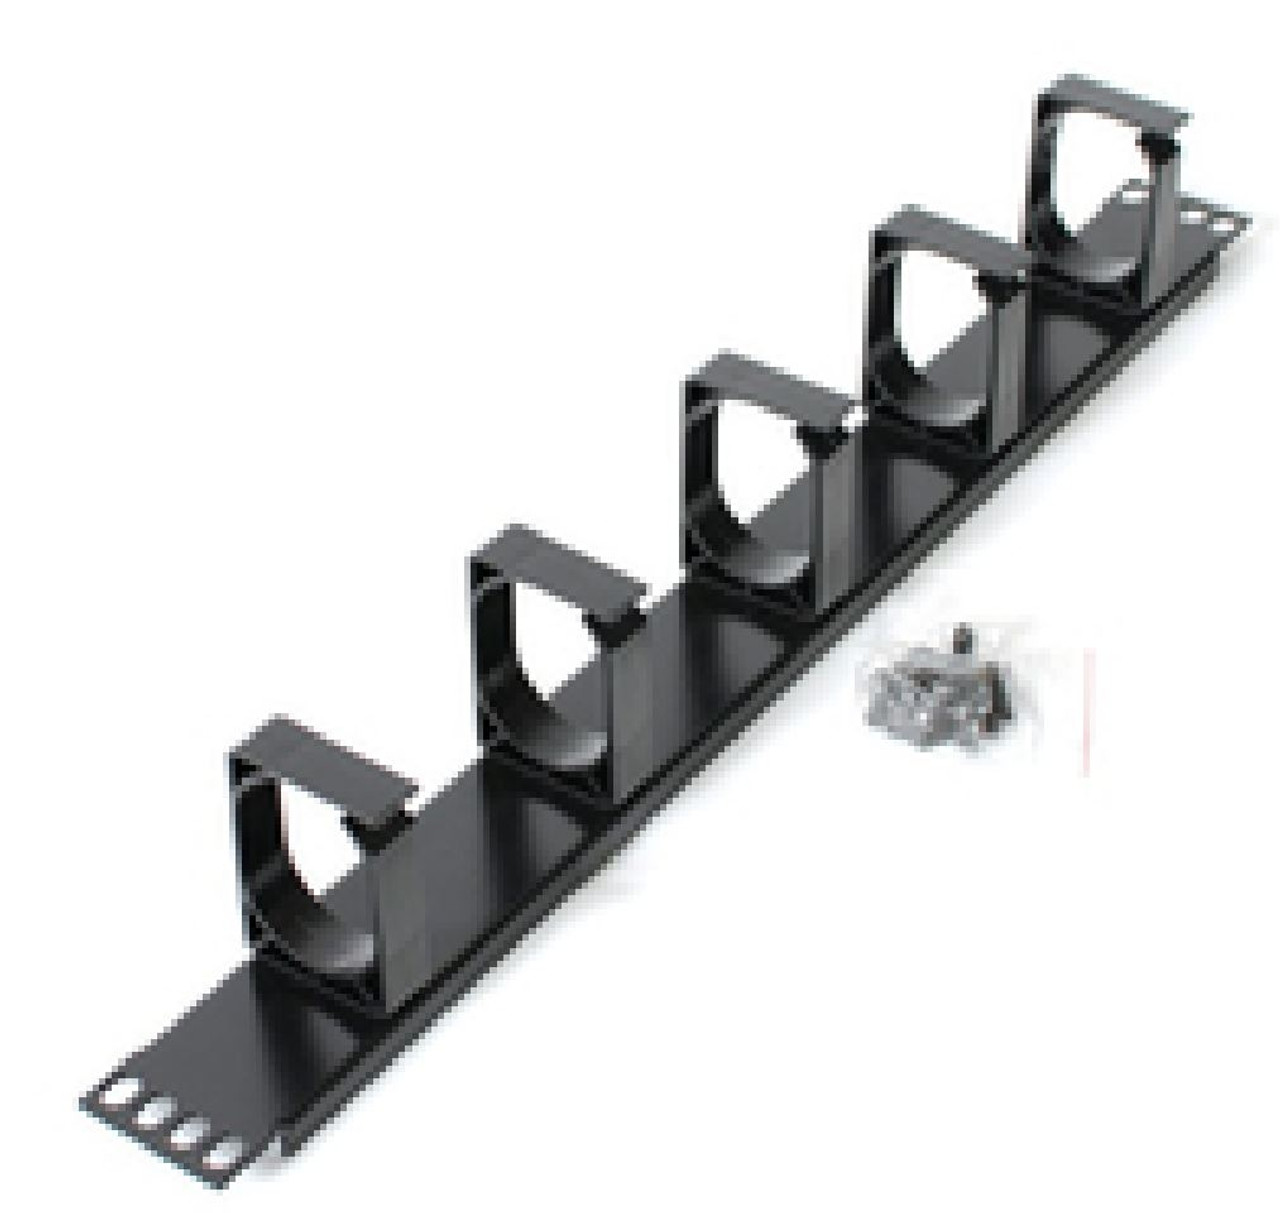 Product image for Astrotek 1U Rack Mount Cable Management Metal Panel | CX Computer Superstore